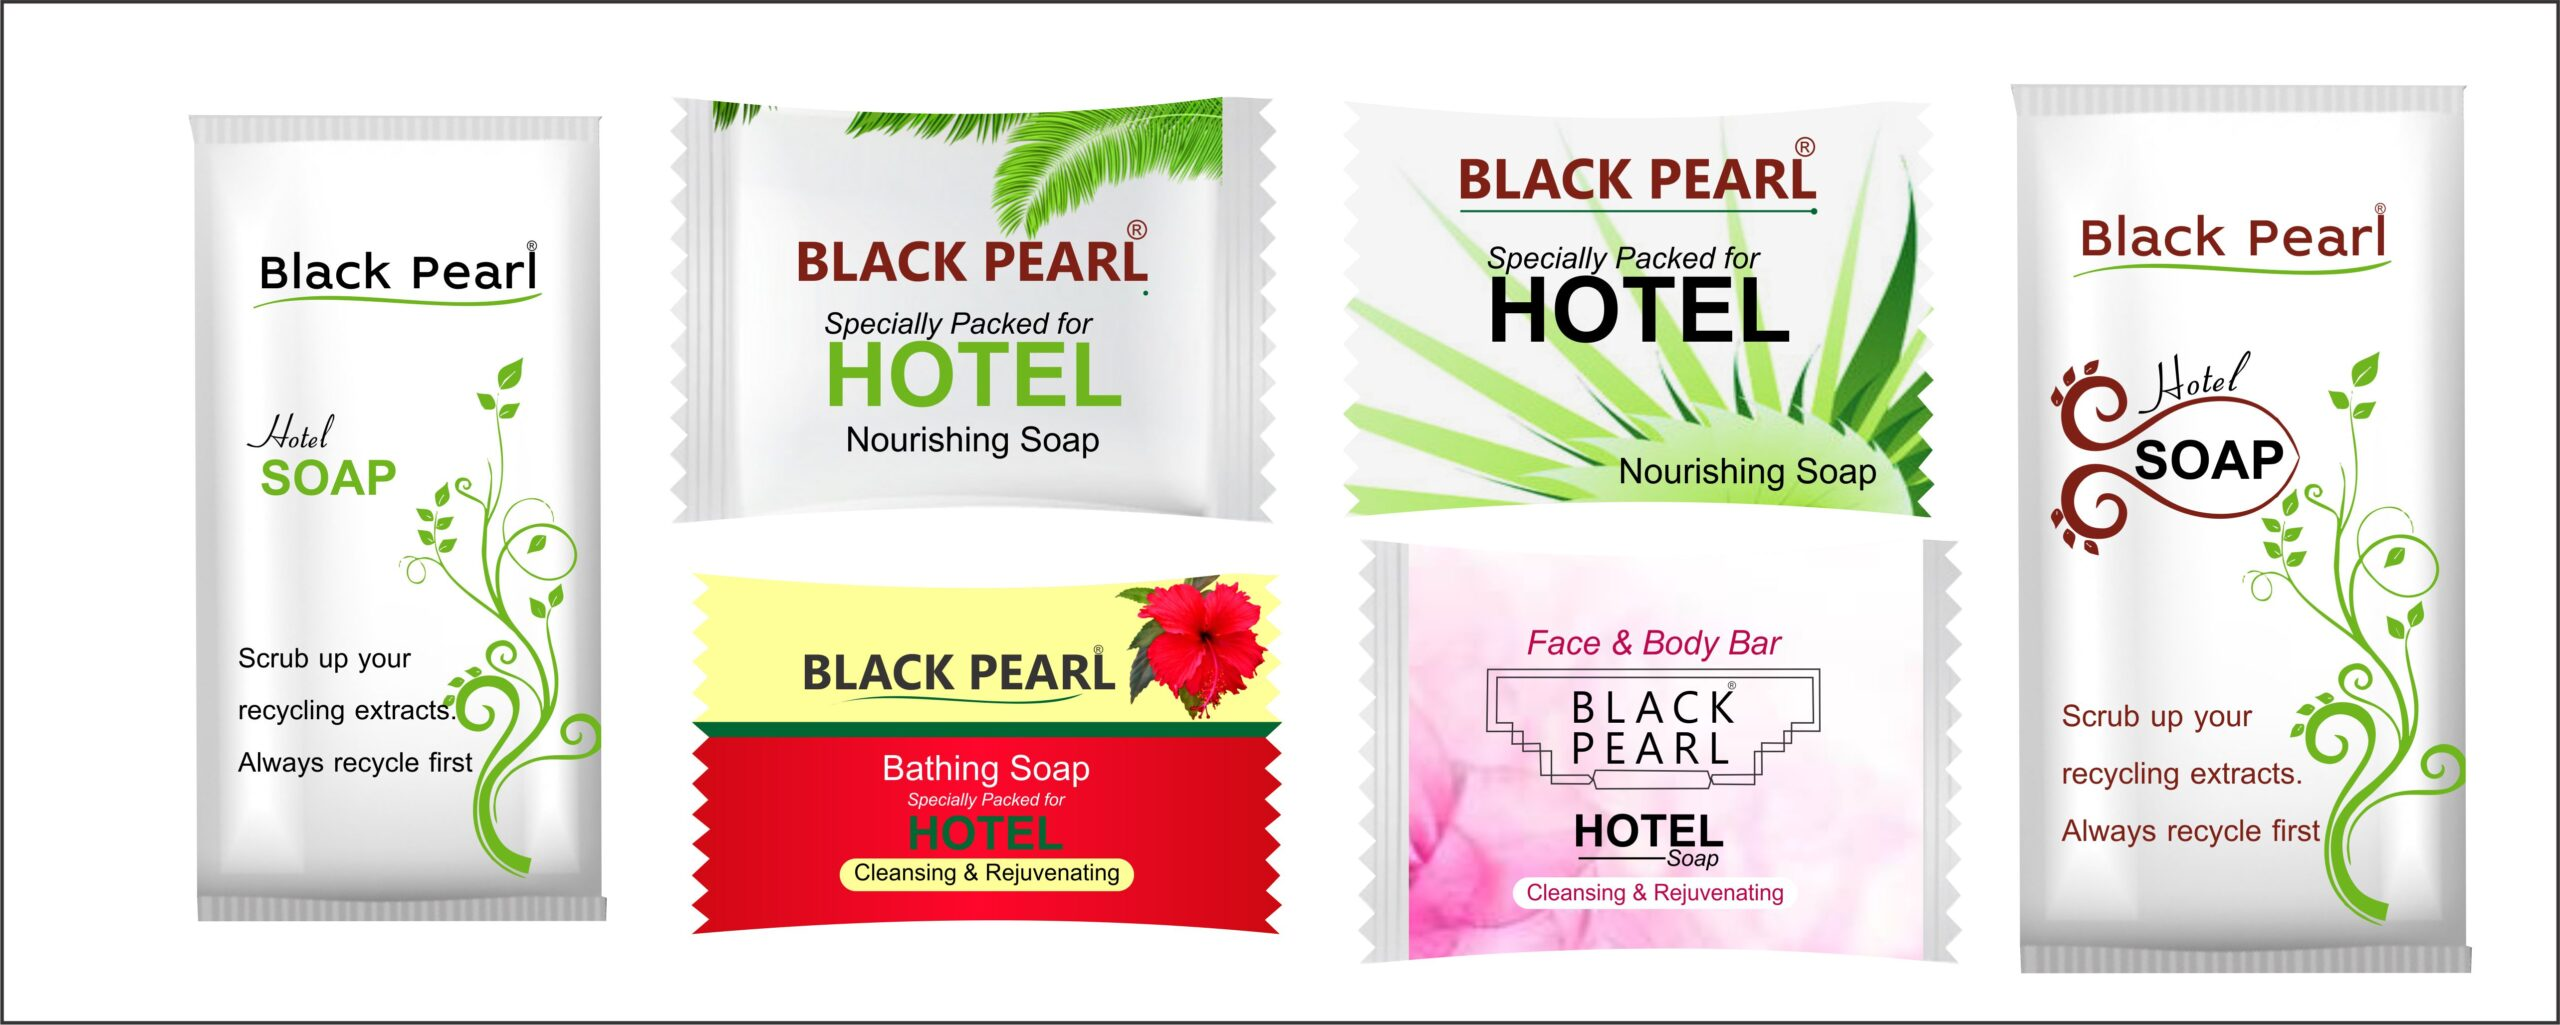 Bodycare Products - HOTEL SOAP